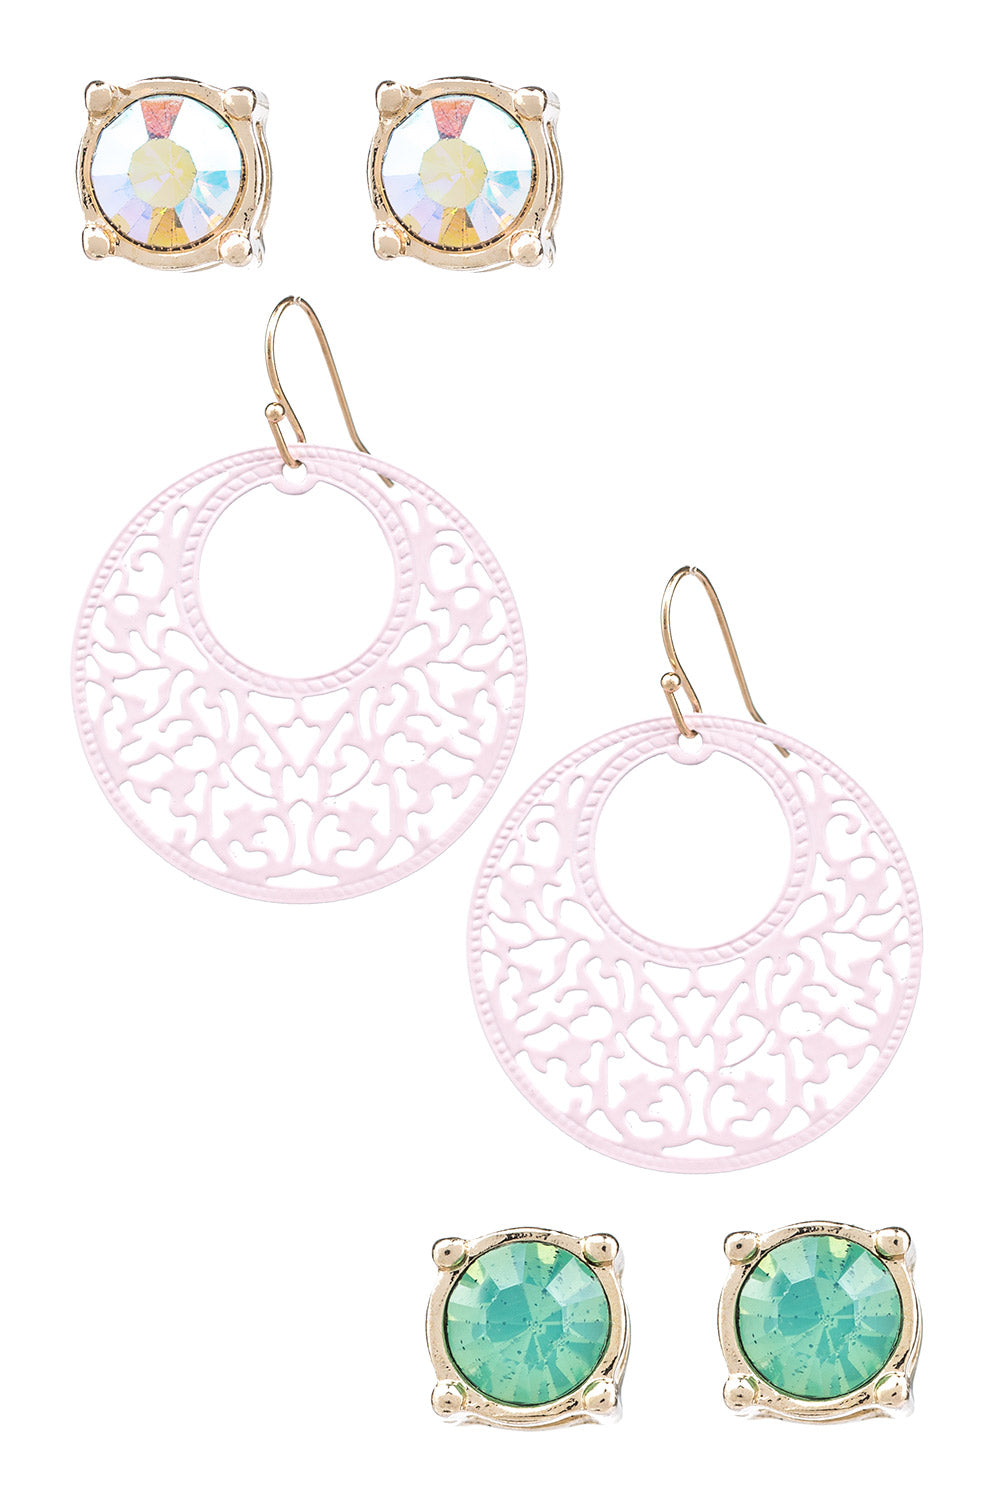 Type 1 Triple Treat Earring Set